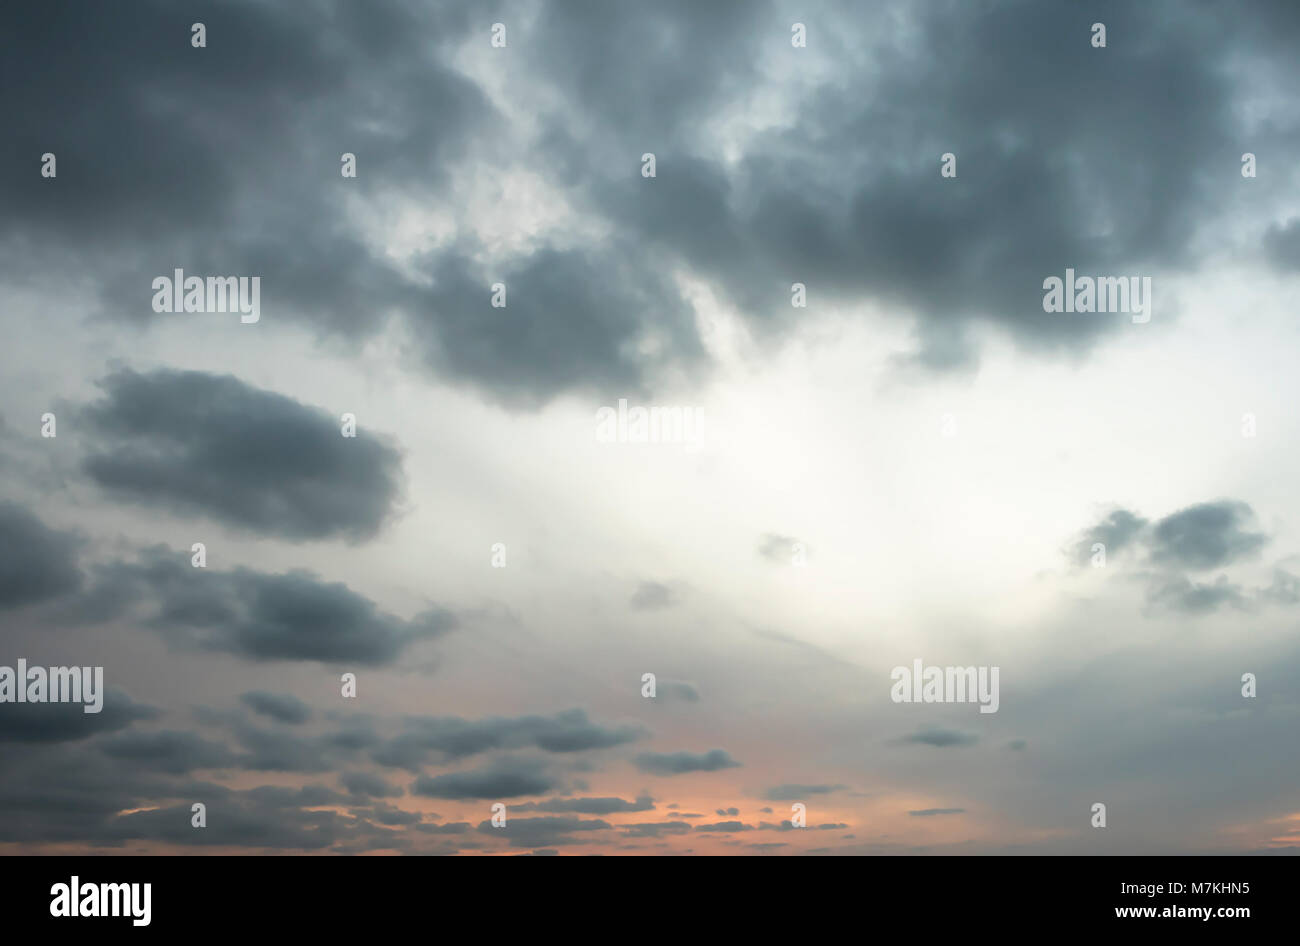 Colourful backgrounds sky overlay. Cloudy sky with grey tones - Stock Image